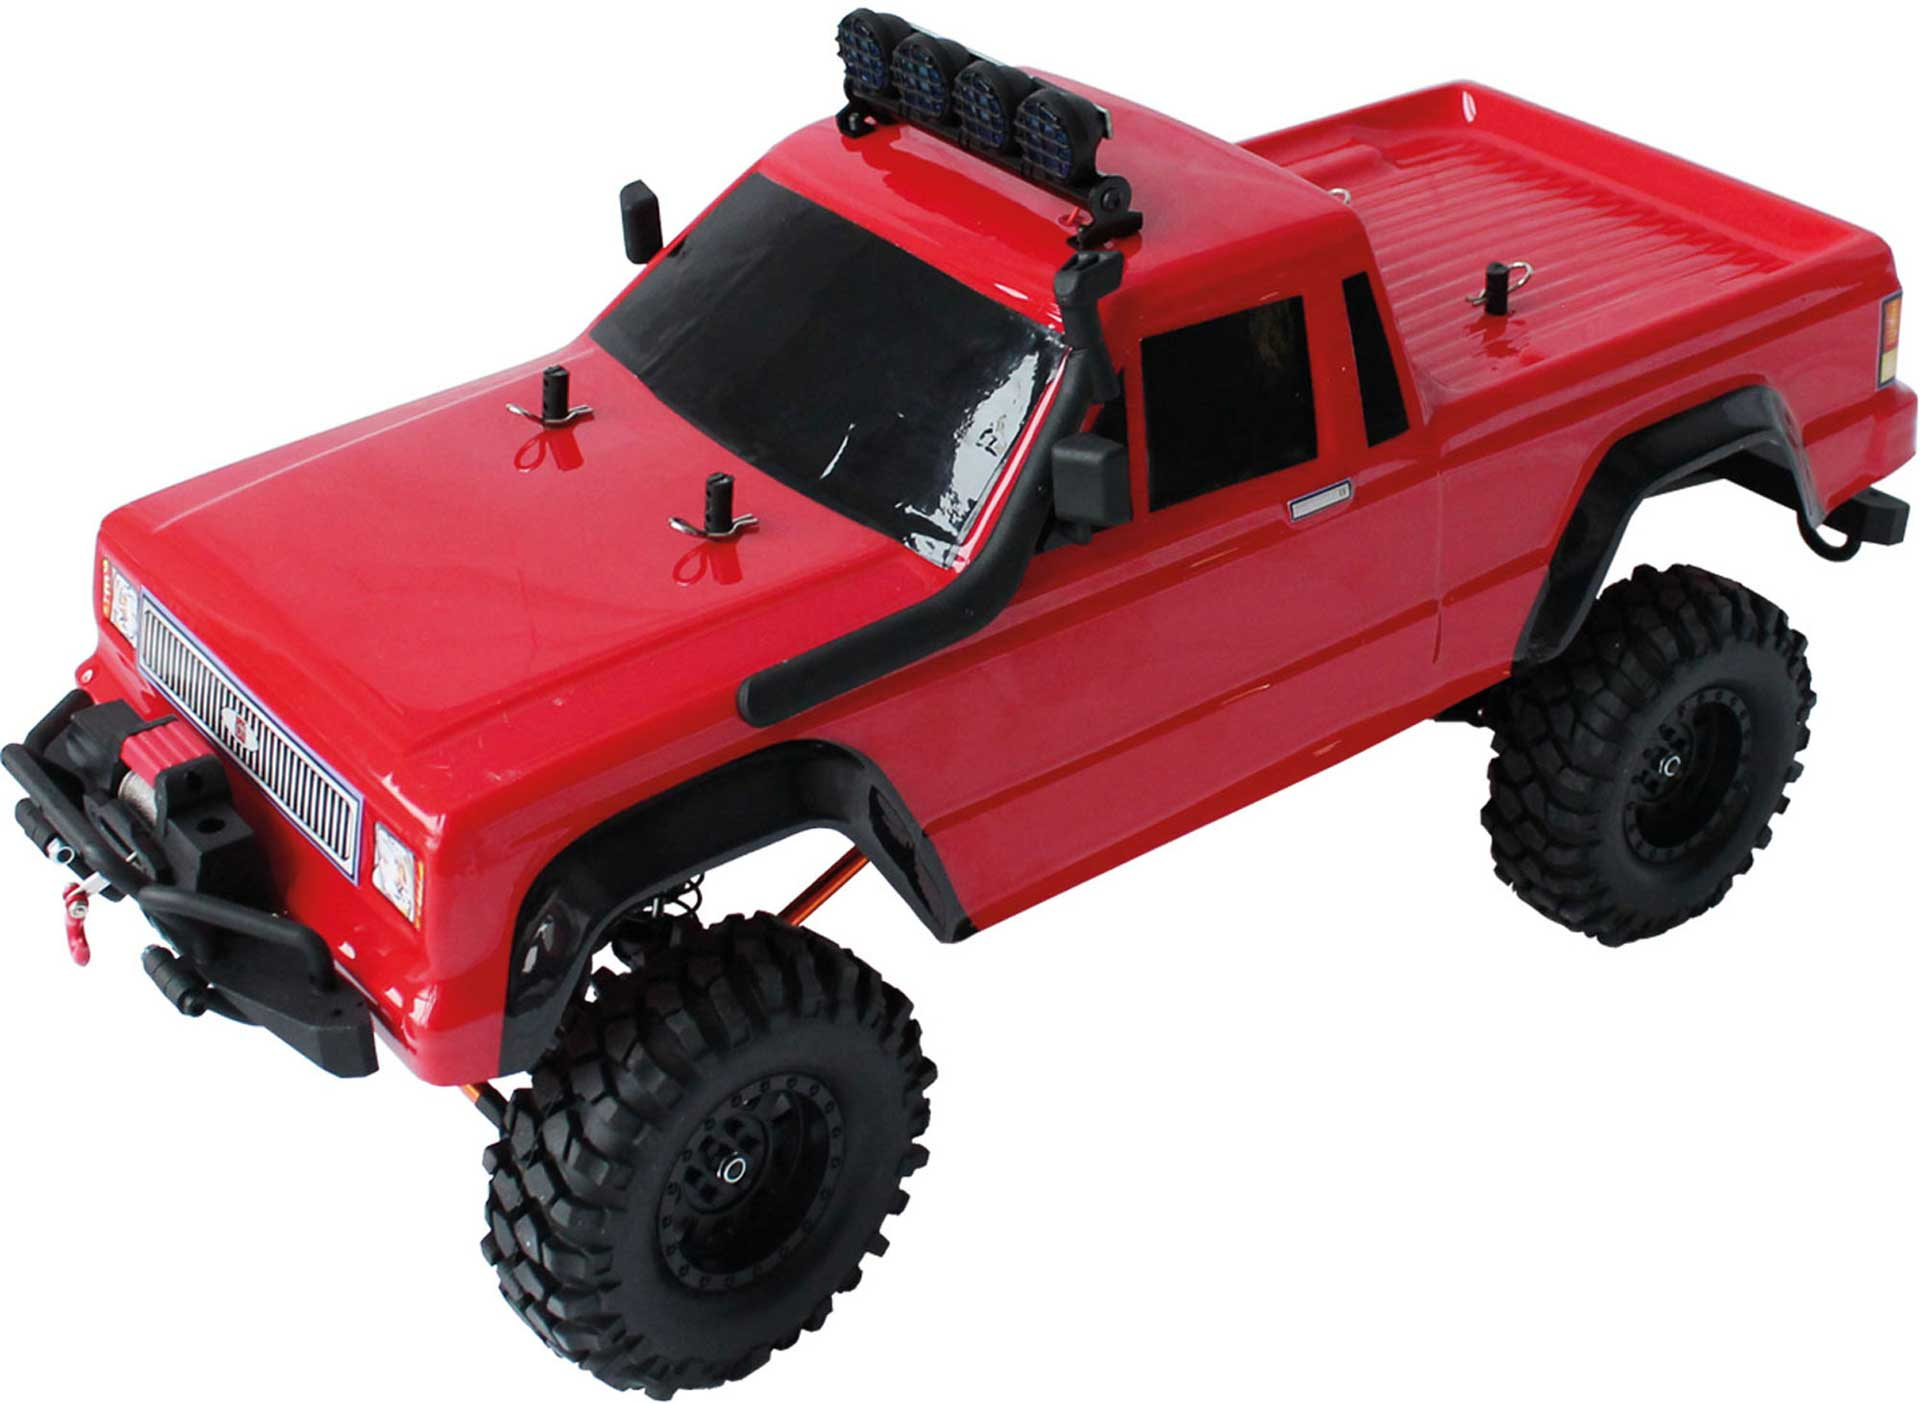 DRIVE & FLY MODELS DF-4S V2 PICK UP CRAWLER ROT 1/10 RTR 4WD MIT SEILWINDE UND 2-GANG GETRIEBE